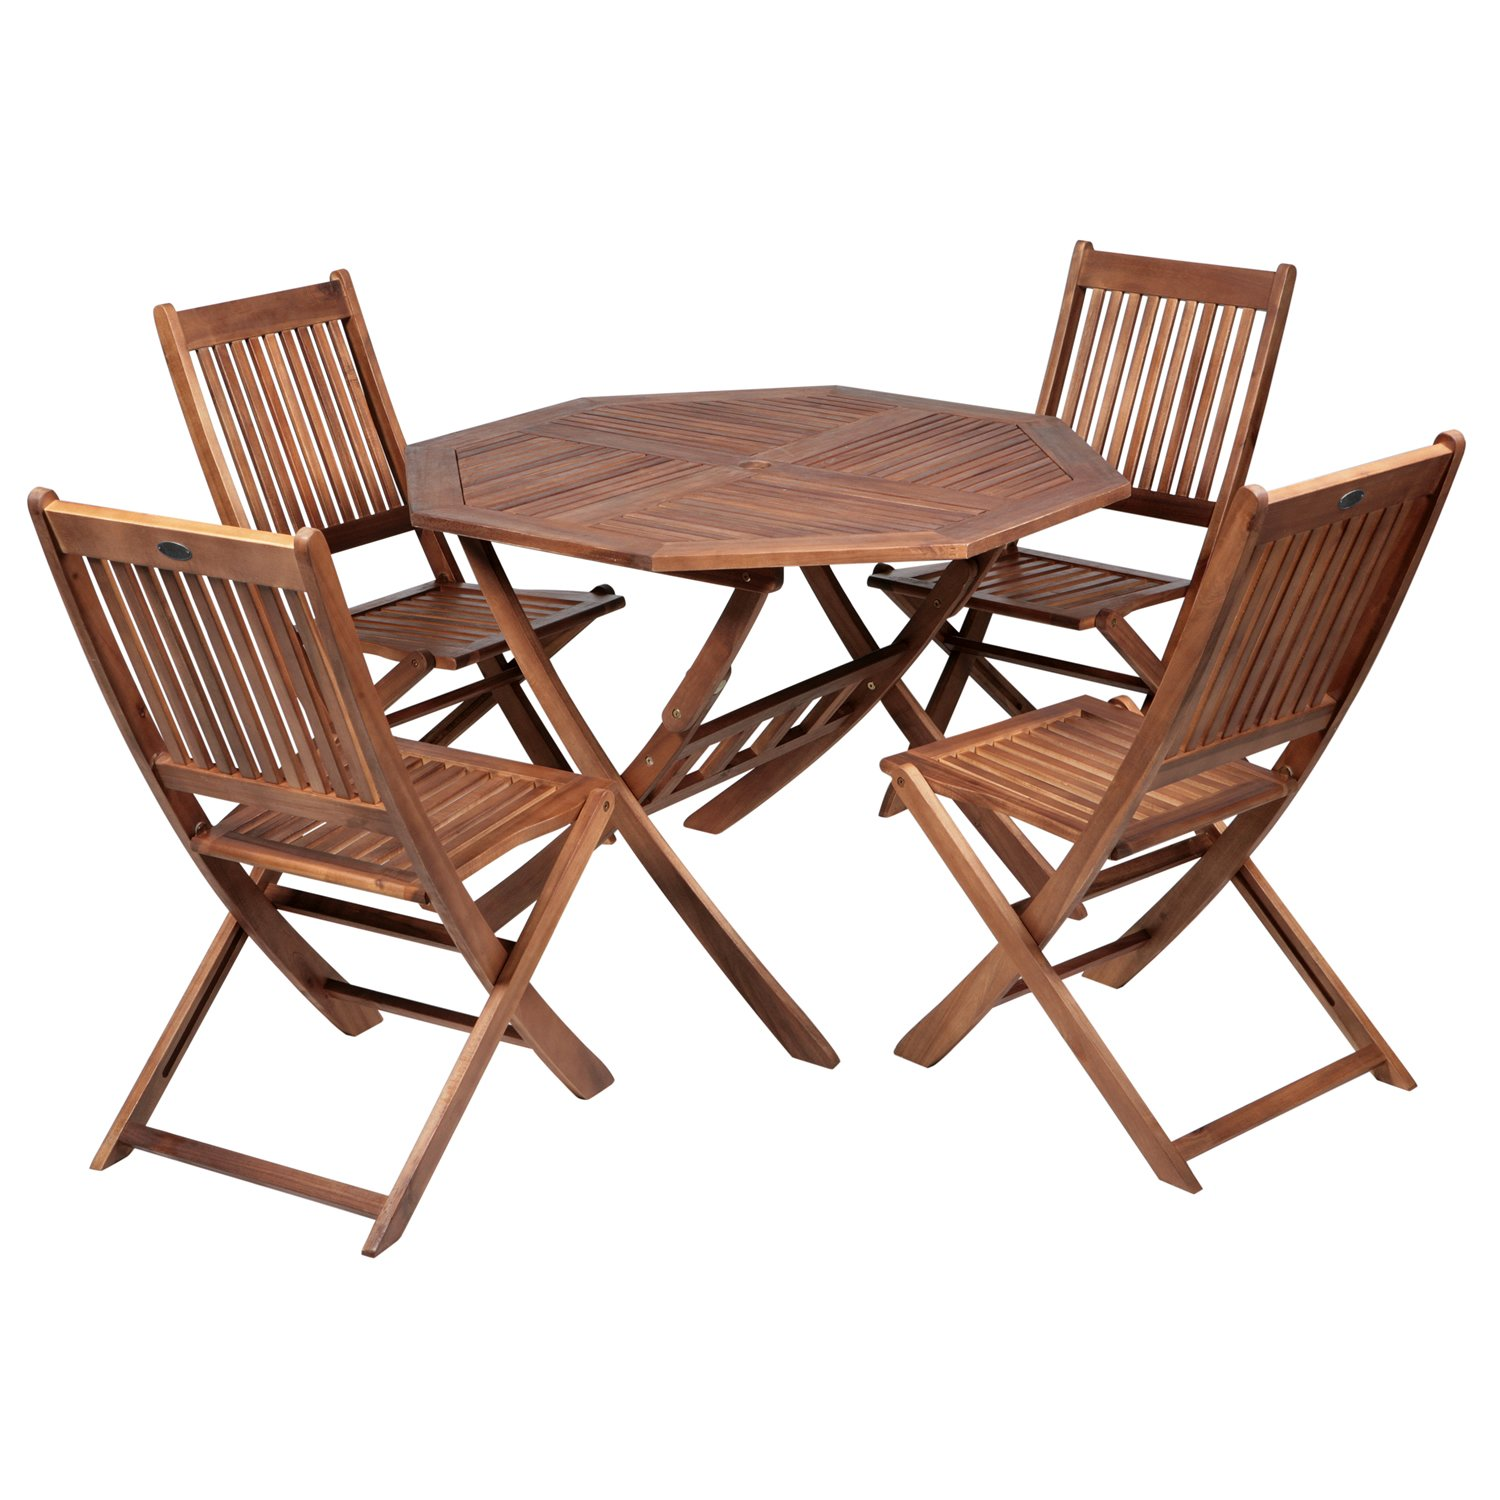 patio 4 seater dining set acacia hardwood octagonal folding table and 4 chairs - Garden Furniture 4 Seater